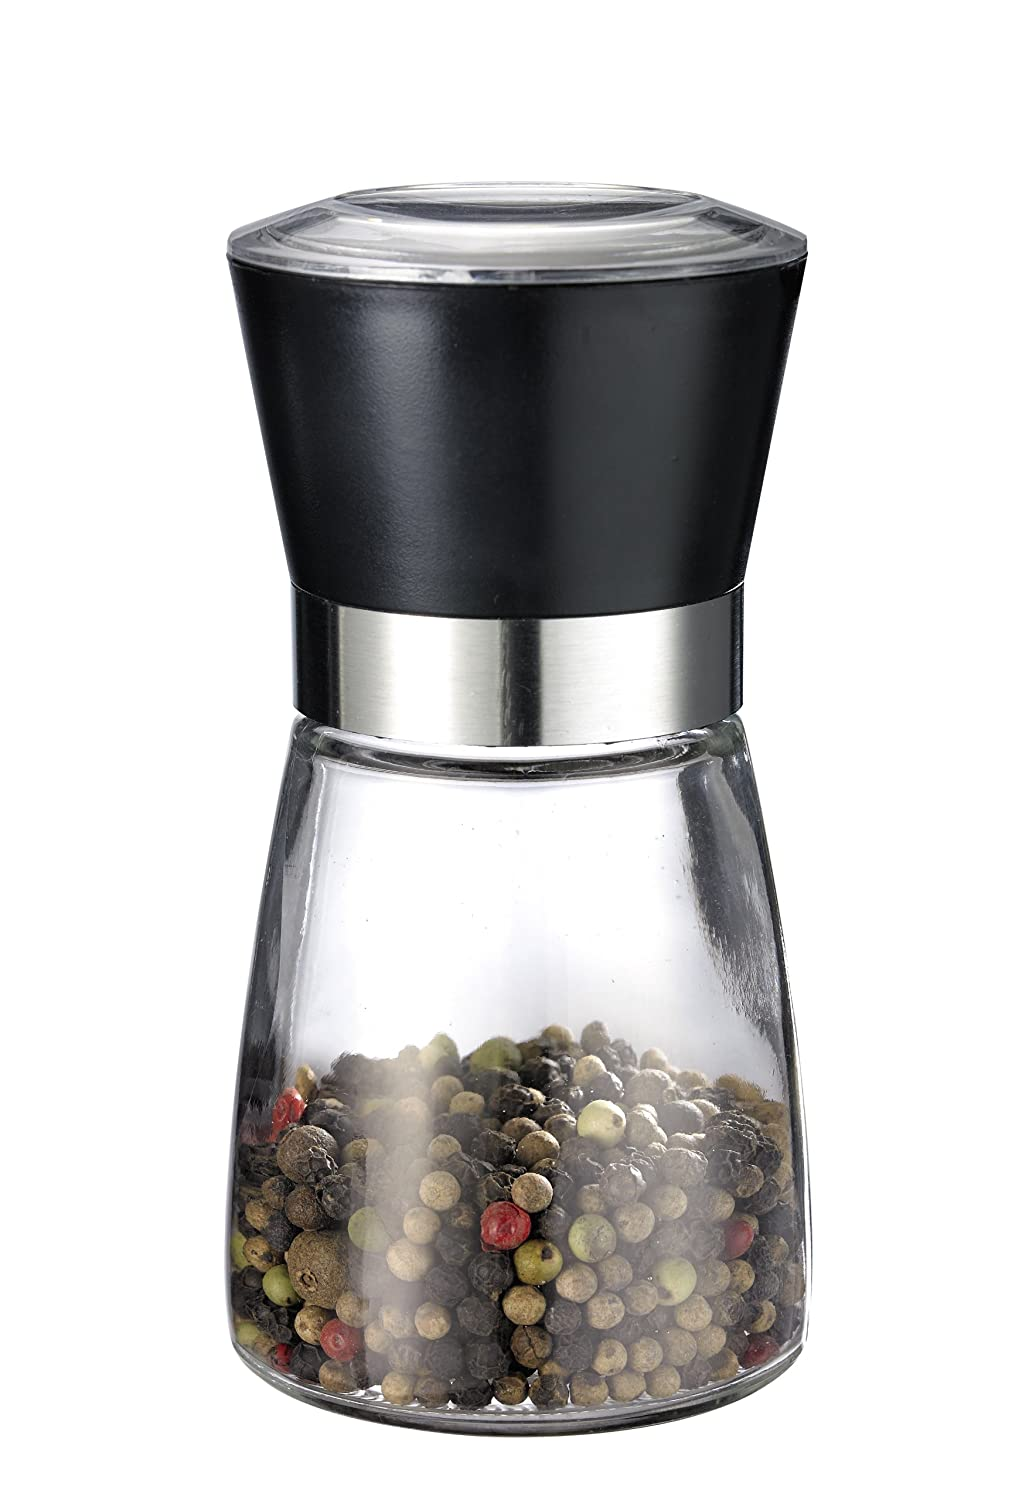 Westmark 63542260 Salt Mill, Spice Mill and Pepper Grinder, Stainless Steel with Glass Bottle Global America Group - BISS